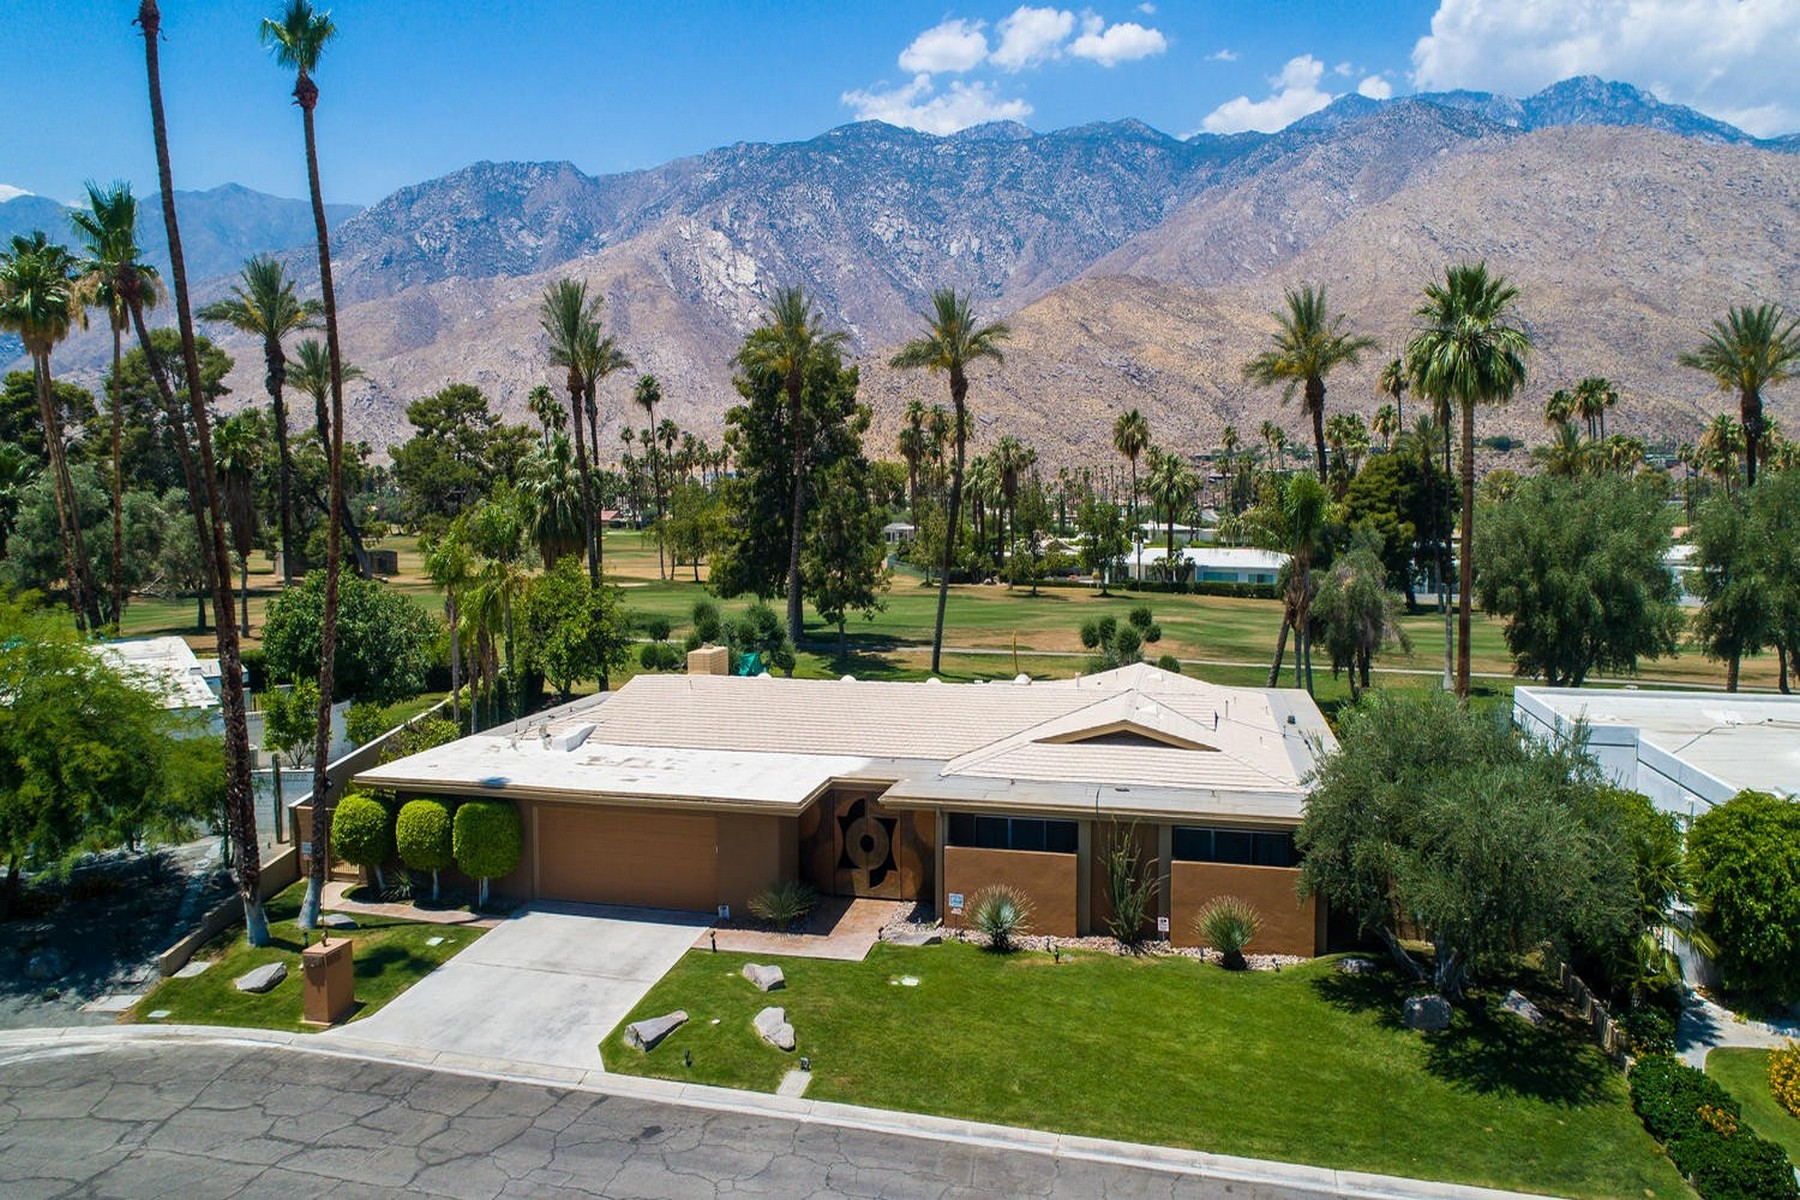 Single Family Home for Sale at 2481 s. Yosemite 2481 S. Yosemite Dr Palm Springs, California 92264 United States